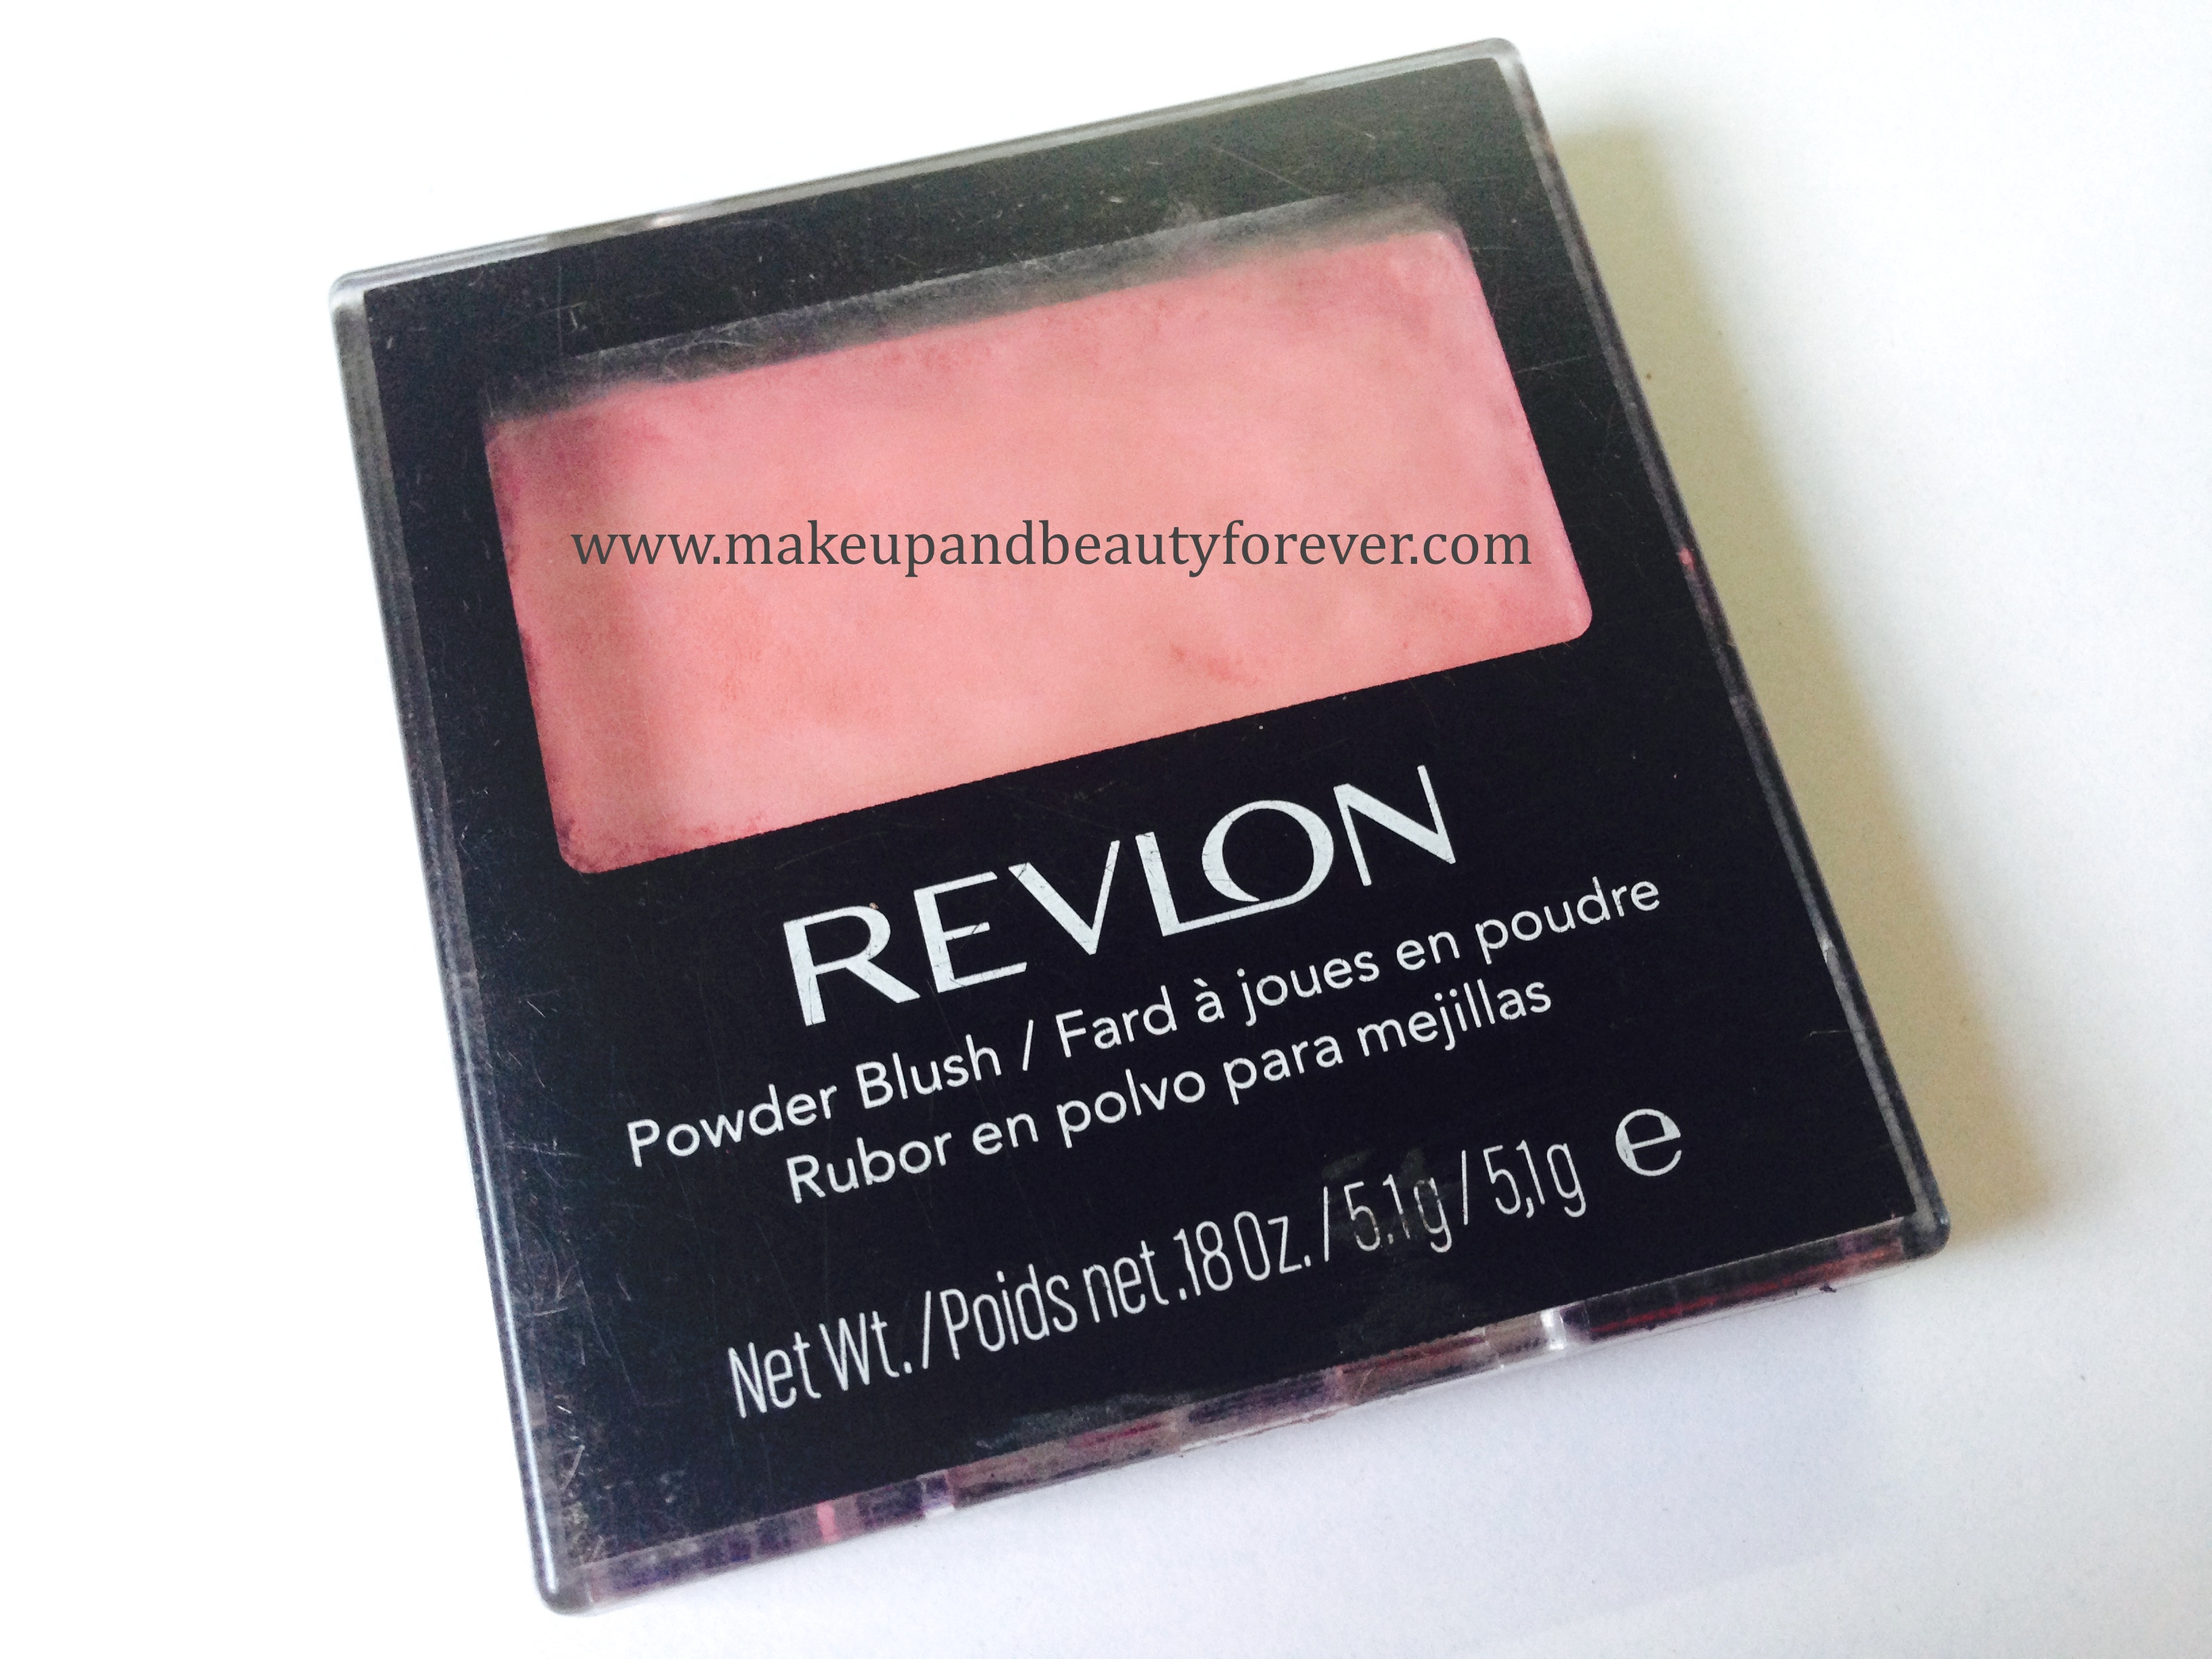 How to fix broken powder makeup with alcohol in four simple steps - How To Fix A Broken Blush Or Eyeshadow Diy Revlon Powder Blush Wine With Everything